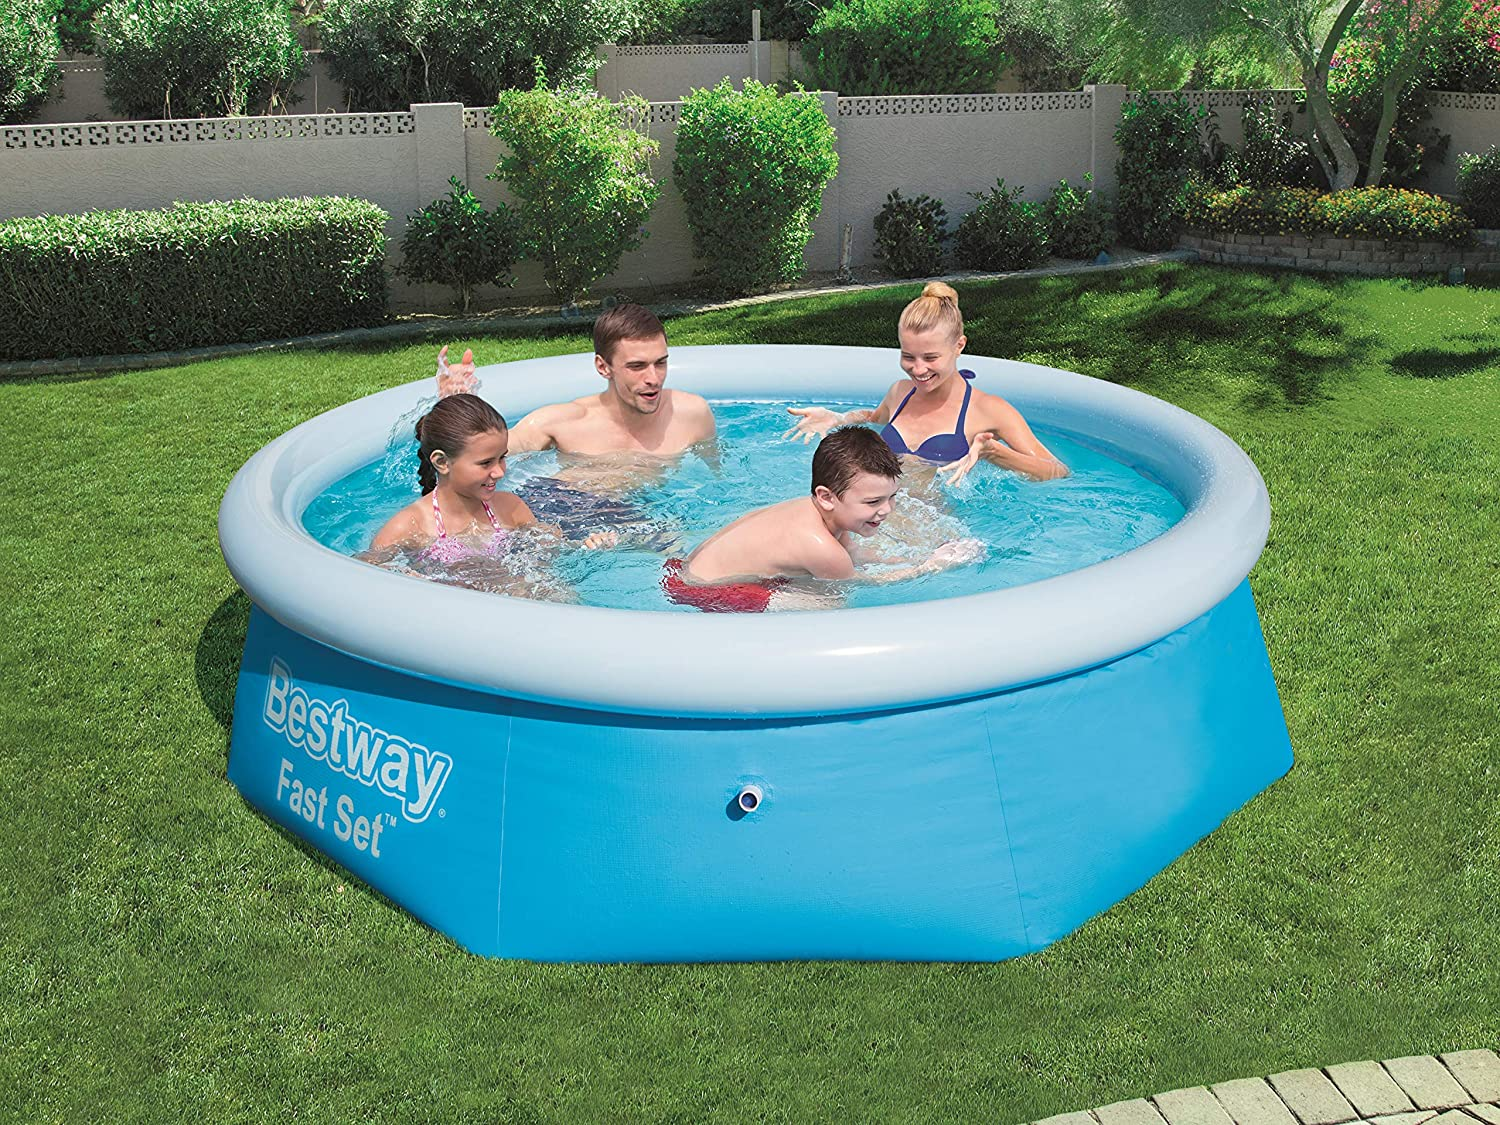 Piscina Desmontable Autoportante Bestway Fast Set 244x66 cm: Amazon.es: Juguetes y juegos